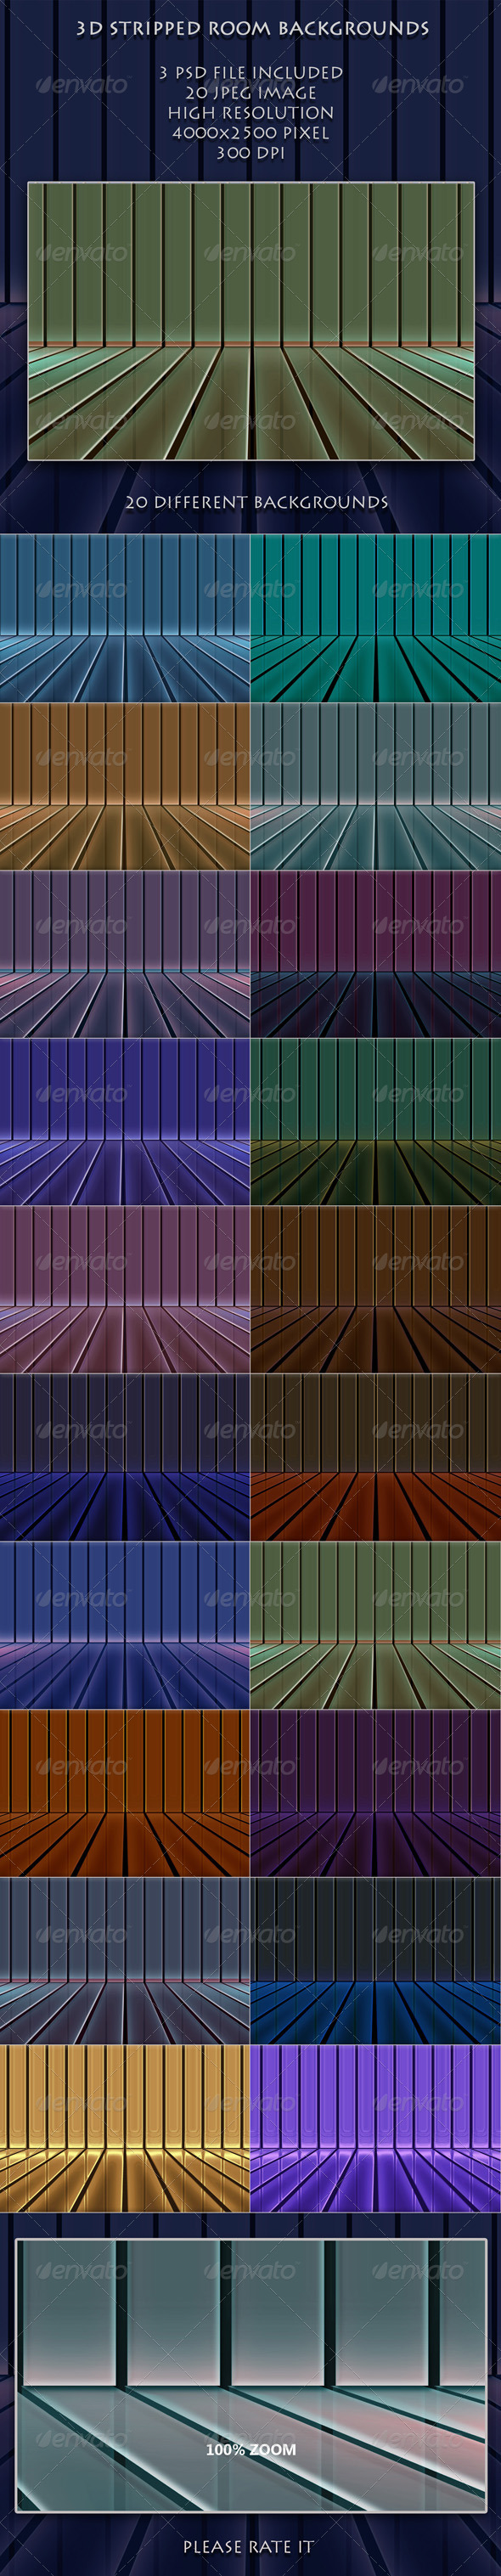 3D Striped Room Backgrounds - 3D Backgrounds